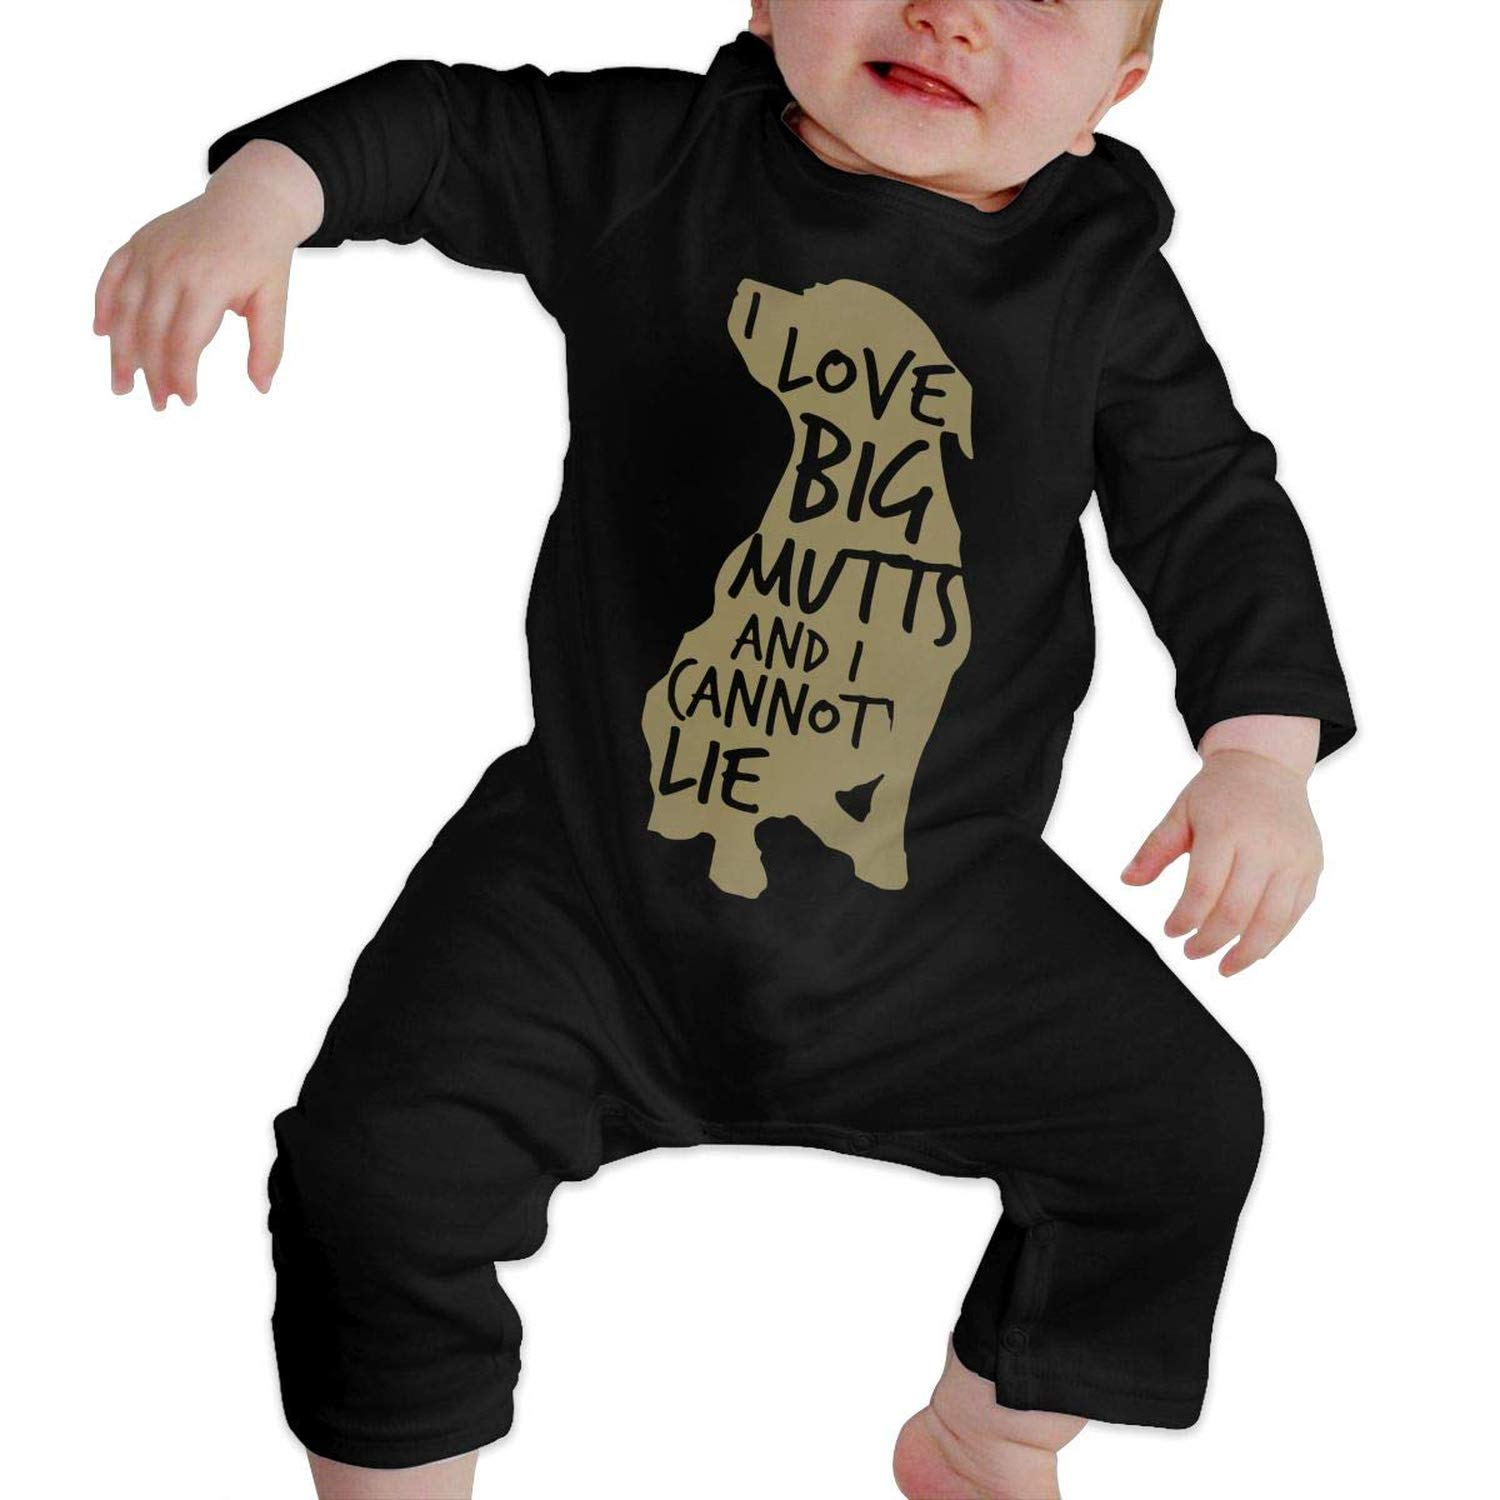 I Love Big Mutts and I Cannot Lie Toddler Baby Boy Girl Long Sleeve Romper Jumpsuit Jumpsuit Onsies